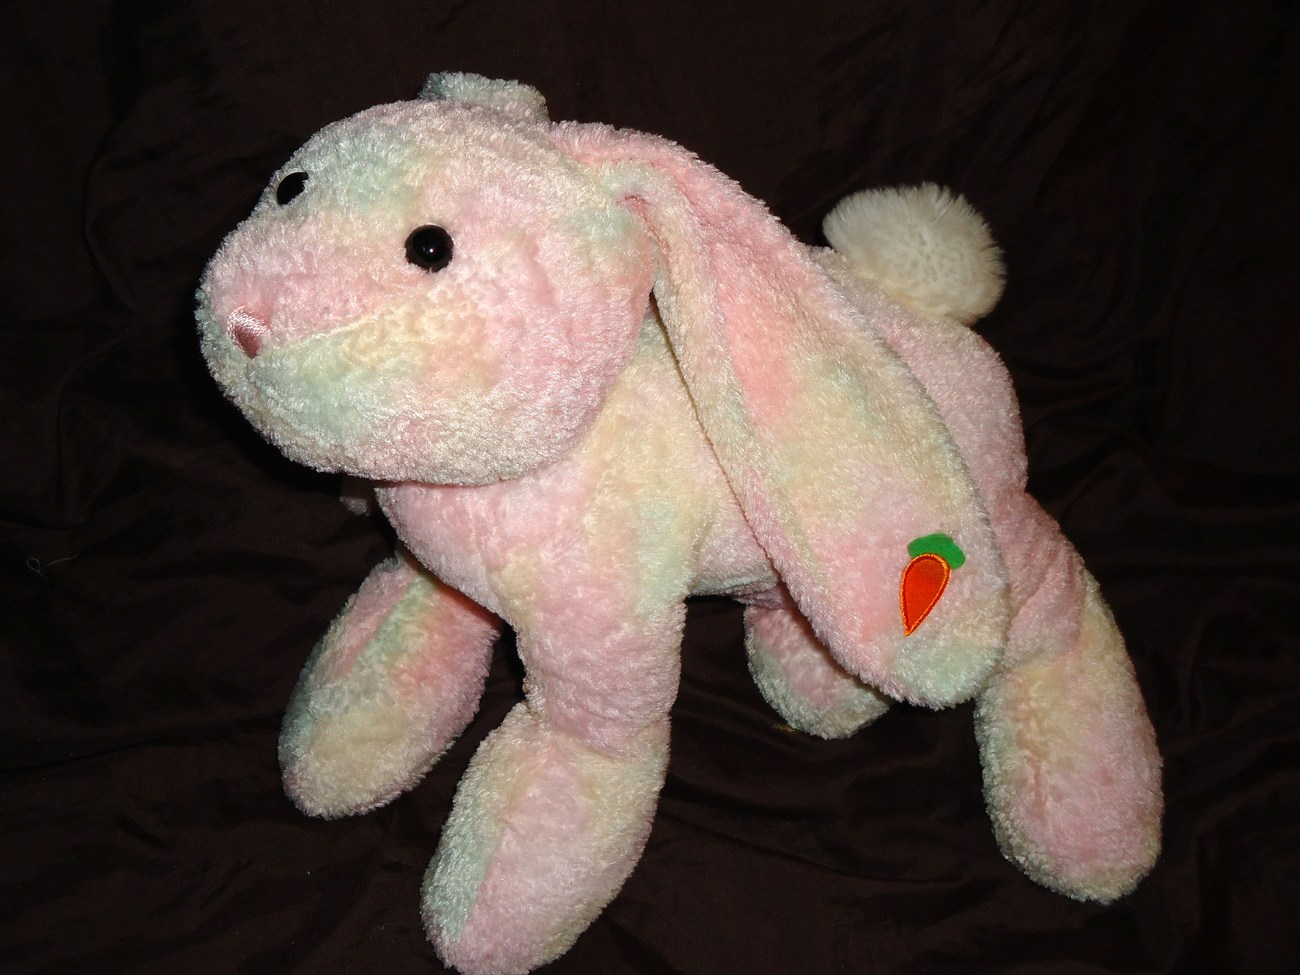 Walmart Pink Easter Bunny Floppy Ear Carrot Plush Stuffed Animal Tie Dye